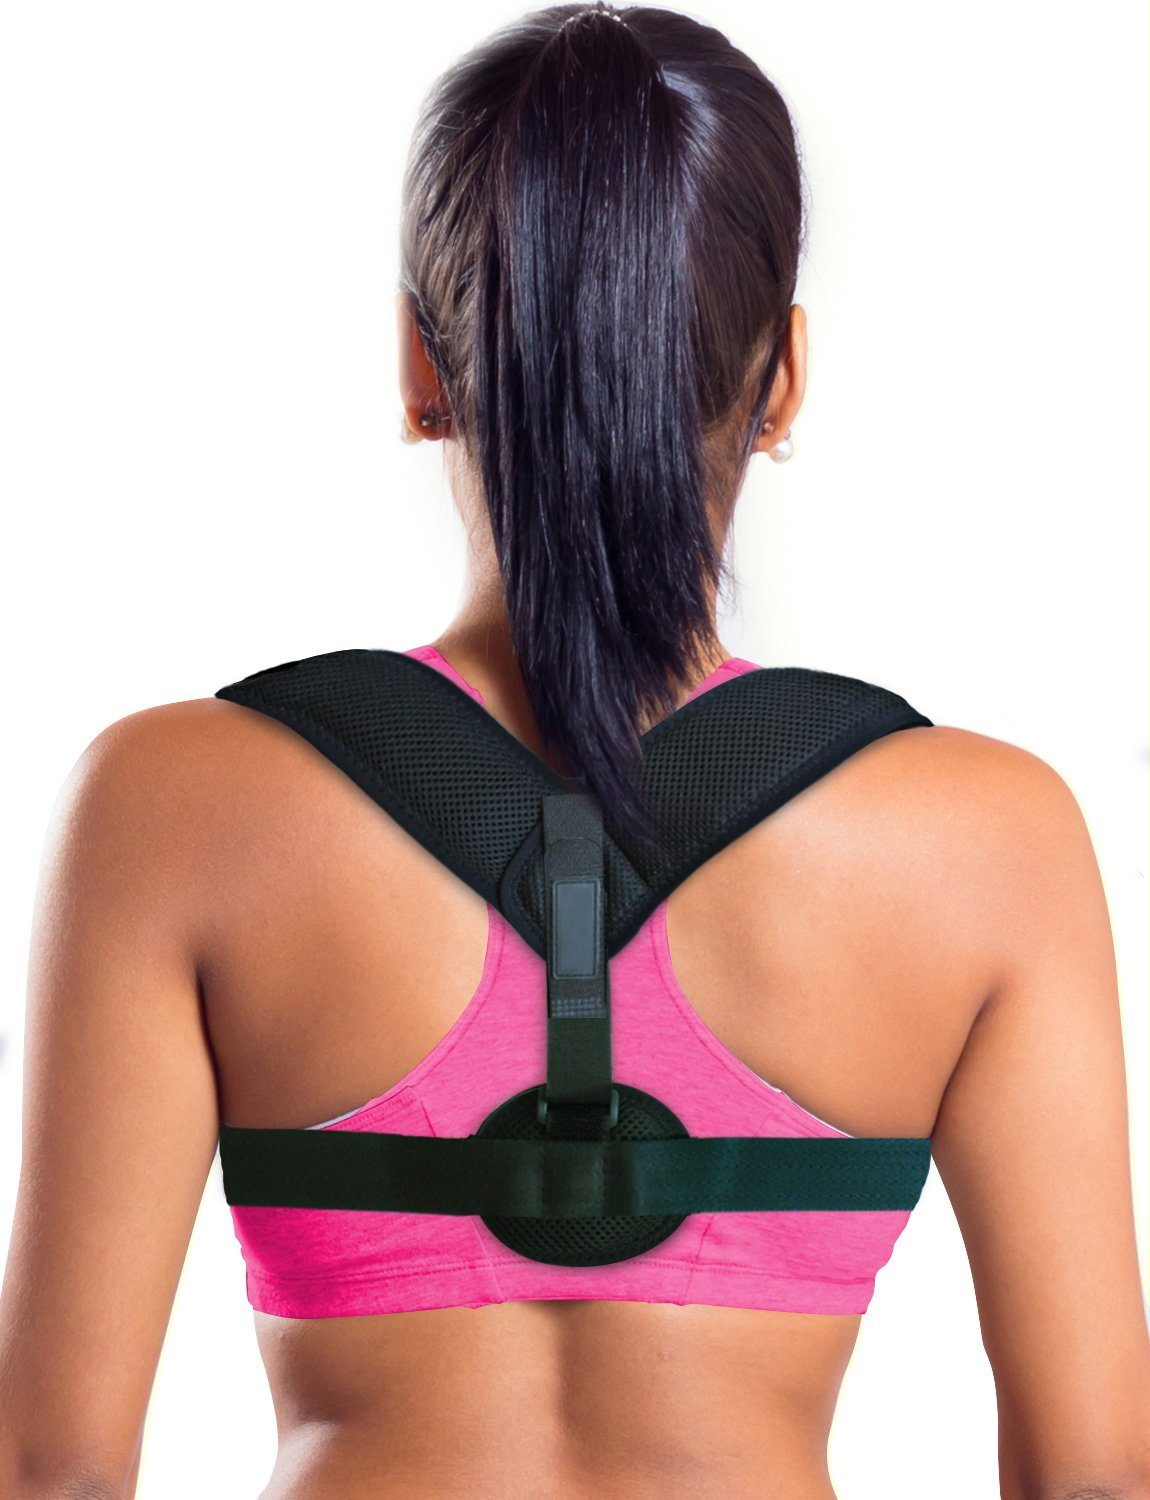 Bangbreak Figure 8 Posture Corrector Back and Shoulder Support Brace for Women & Men, Helps to Improve Posture, Prevent Slouching and Relieve Pain by Bangbreak